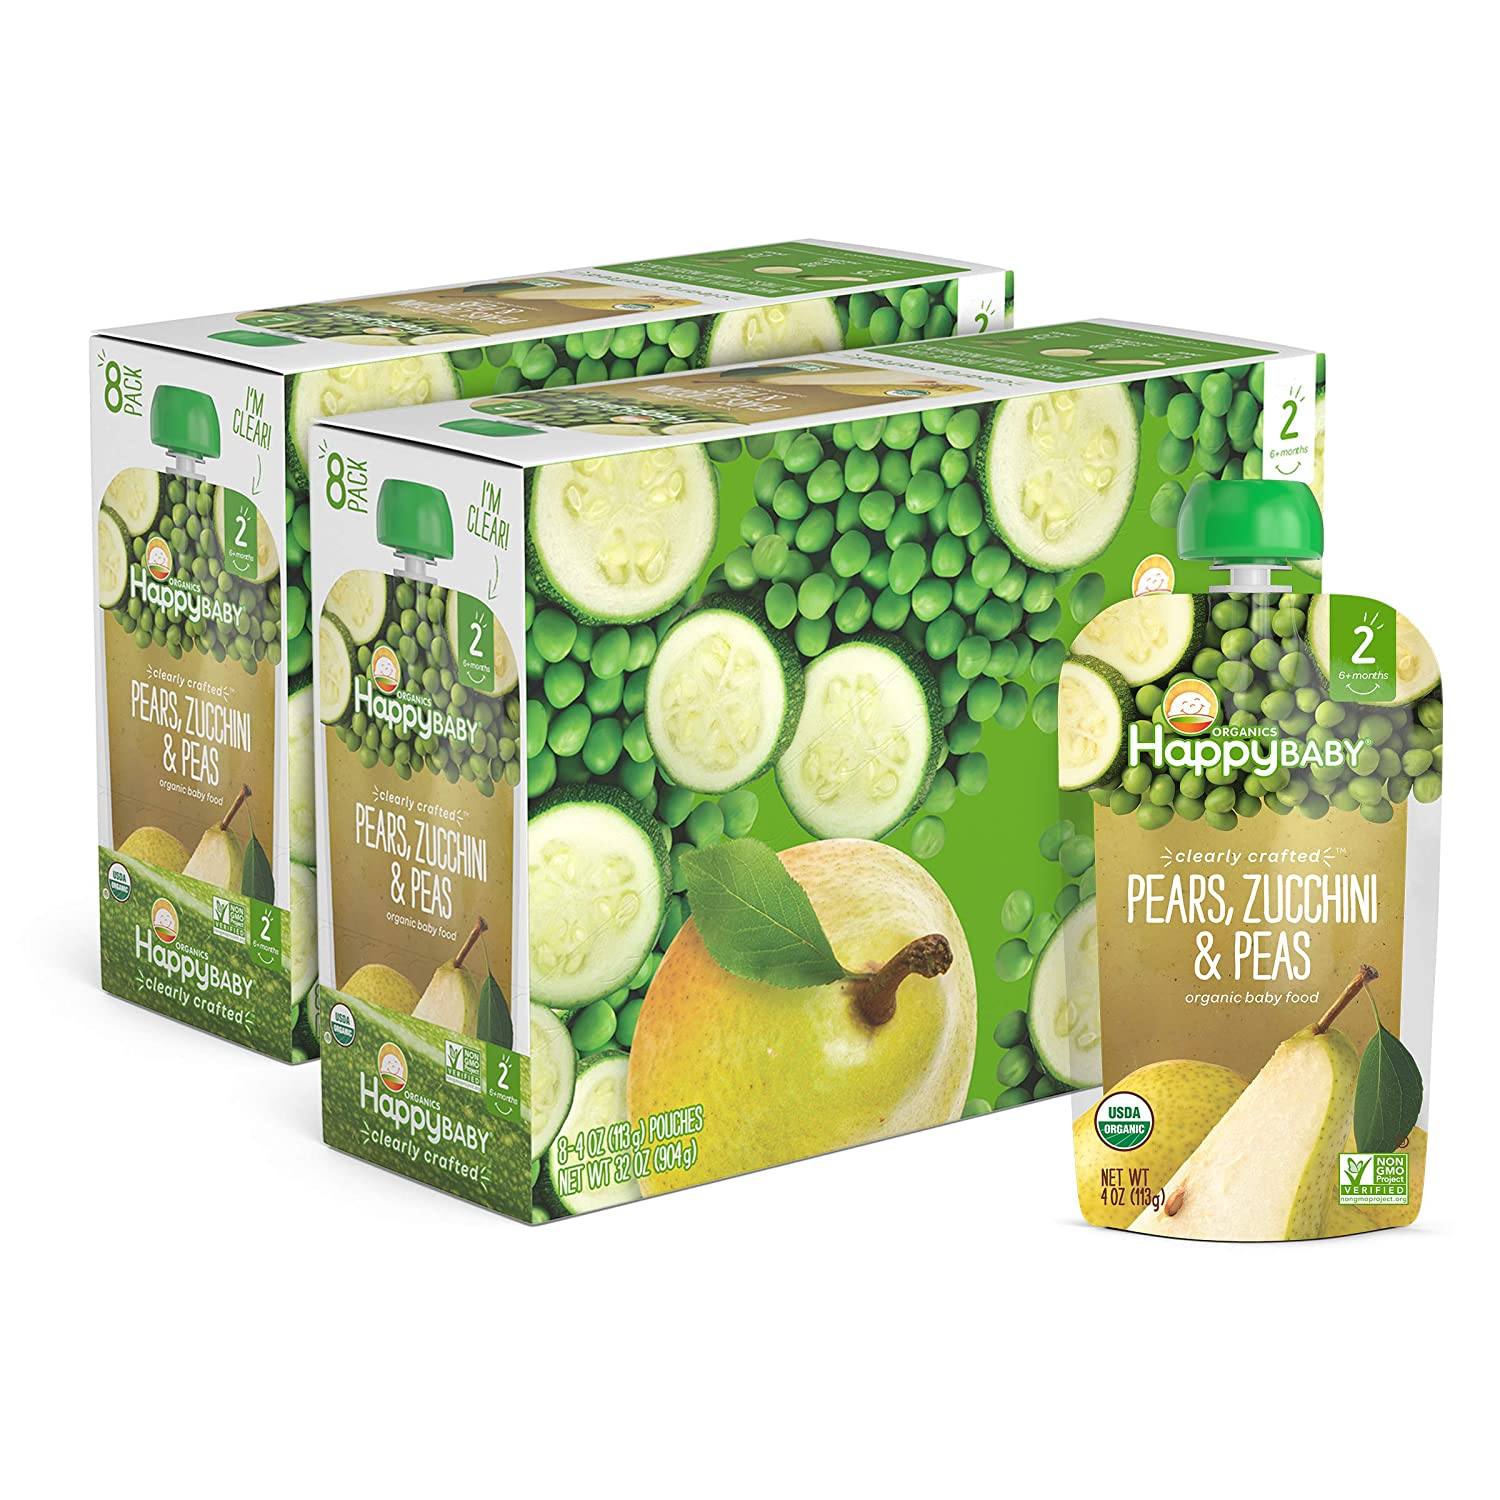 Happy Baby Organic Clearly Crafted Stage 2 Baby Food Pears, Zucchini & Peas, 4 Ounce Pouch (Pack of 16)